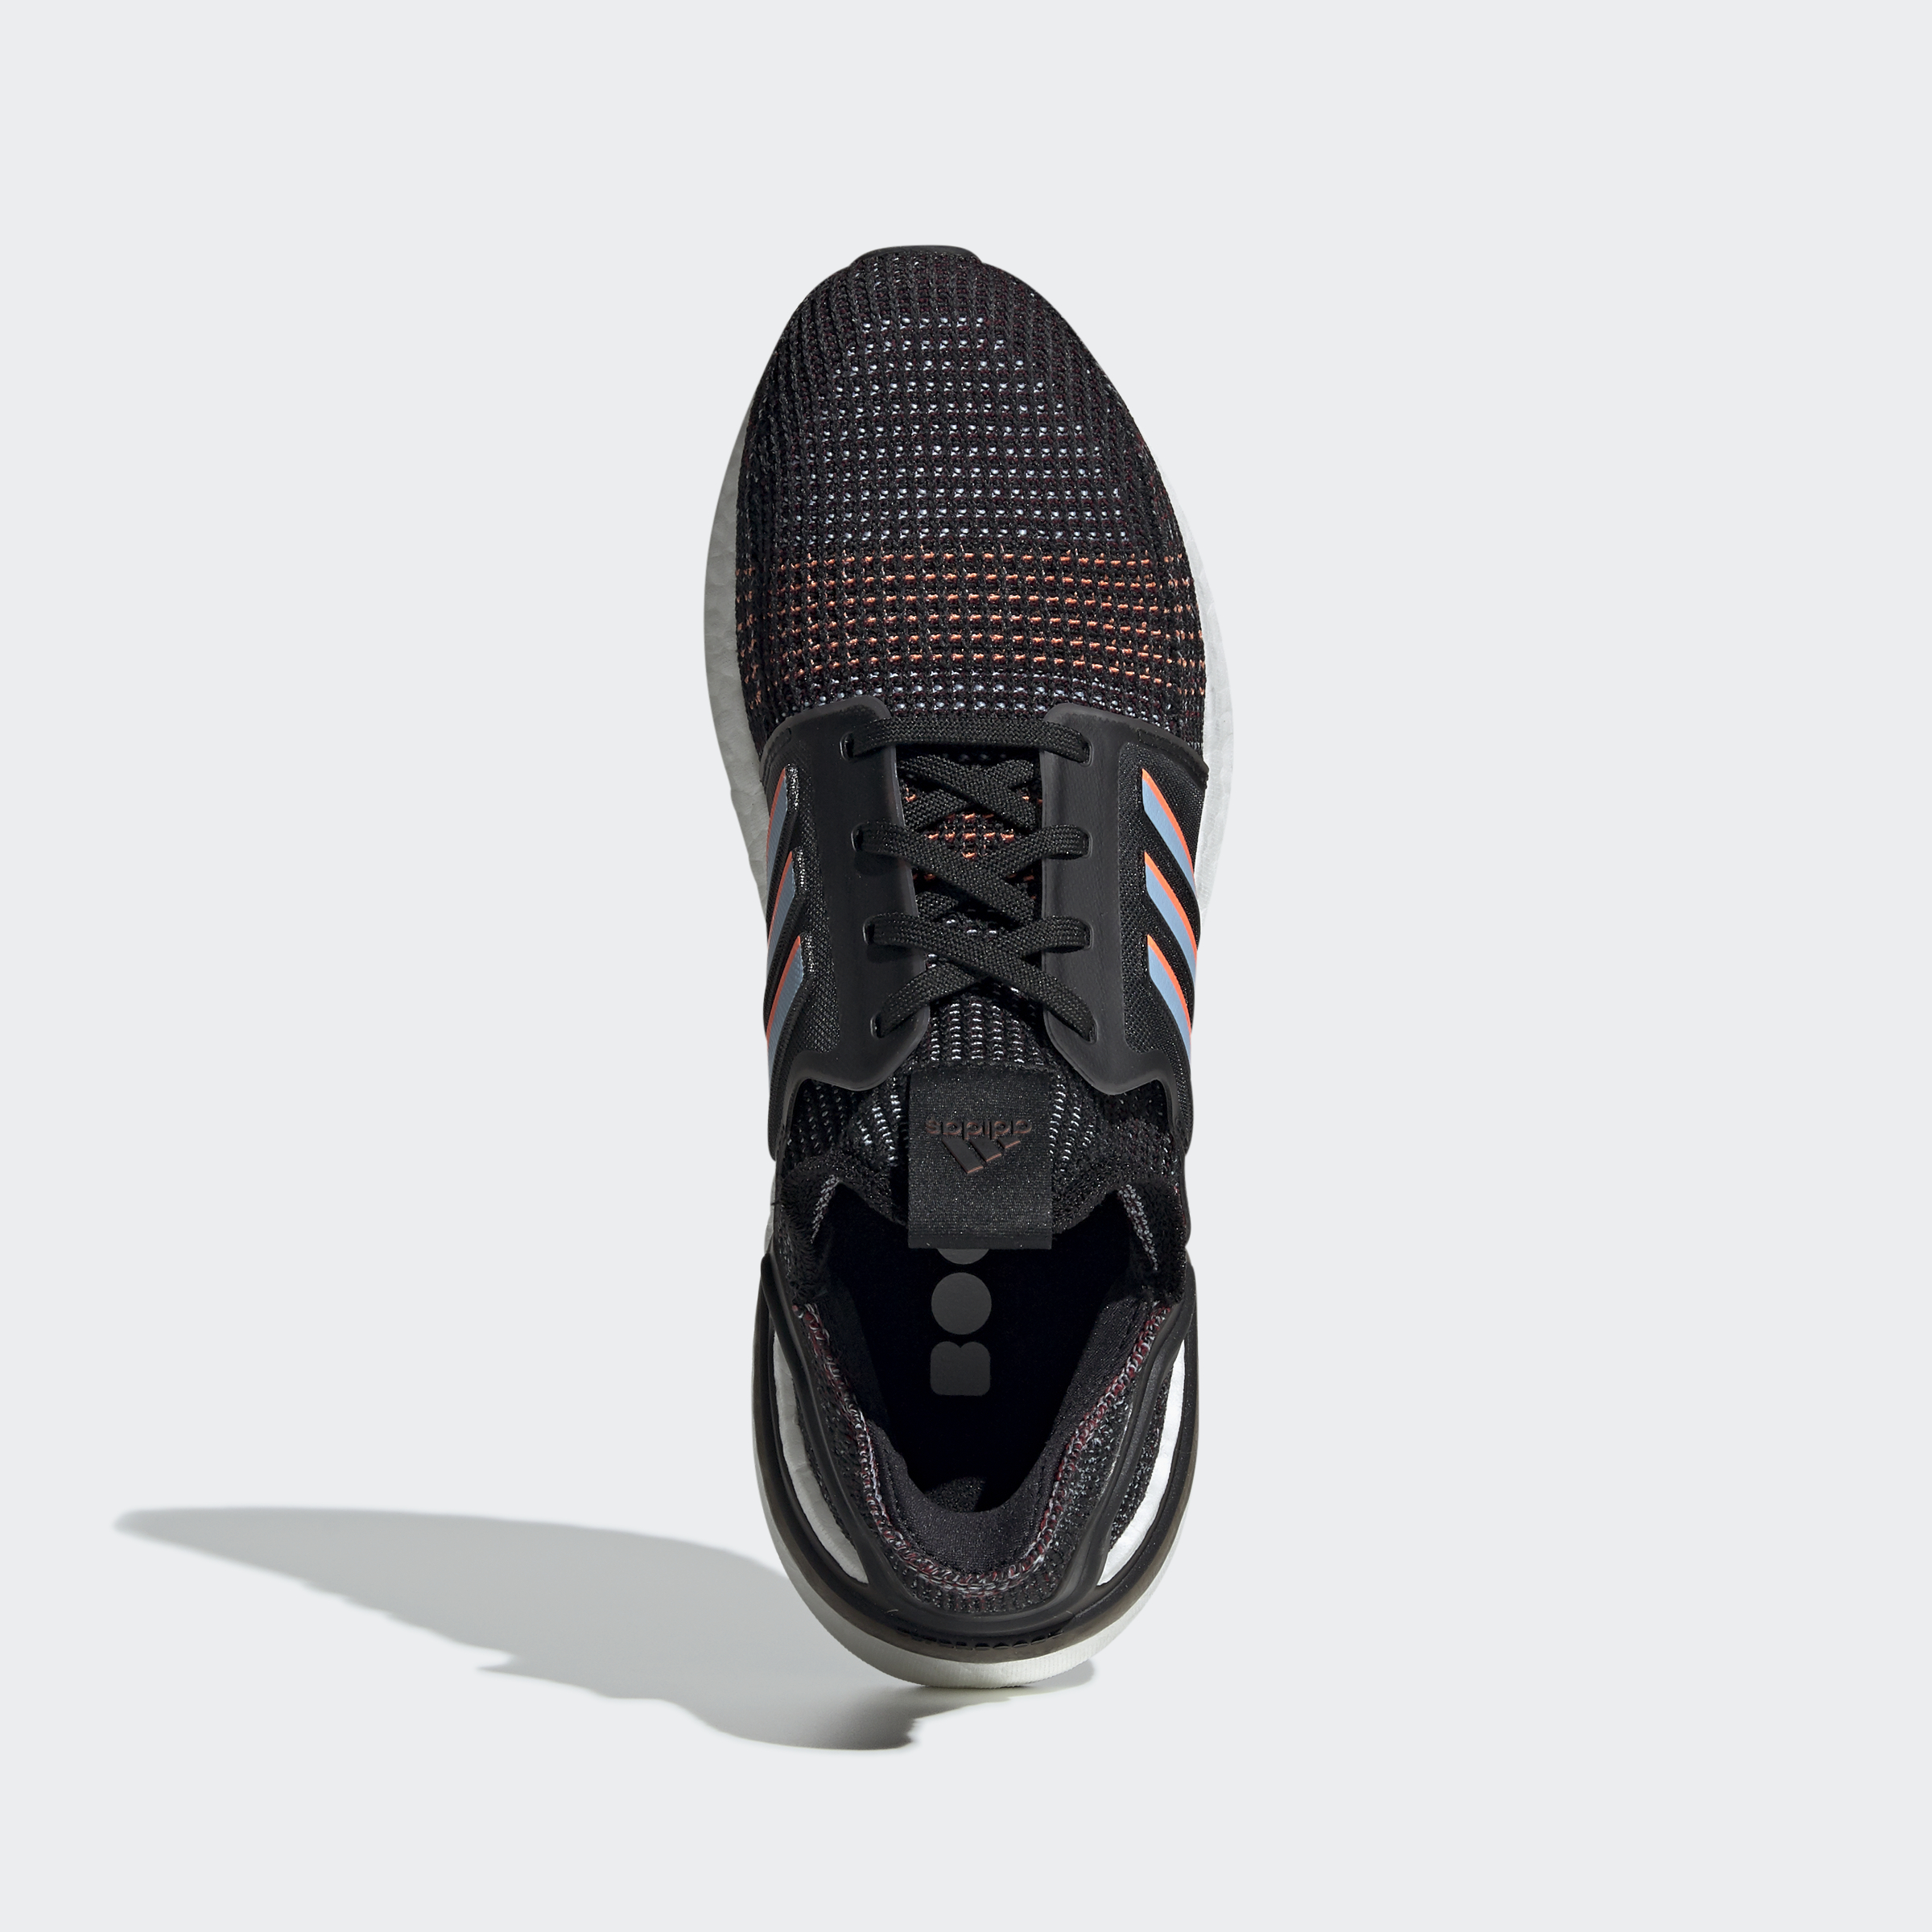 adidas-Ultraboost-19-Shoes-Athletic-amp-Sneakers thumbnail 132